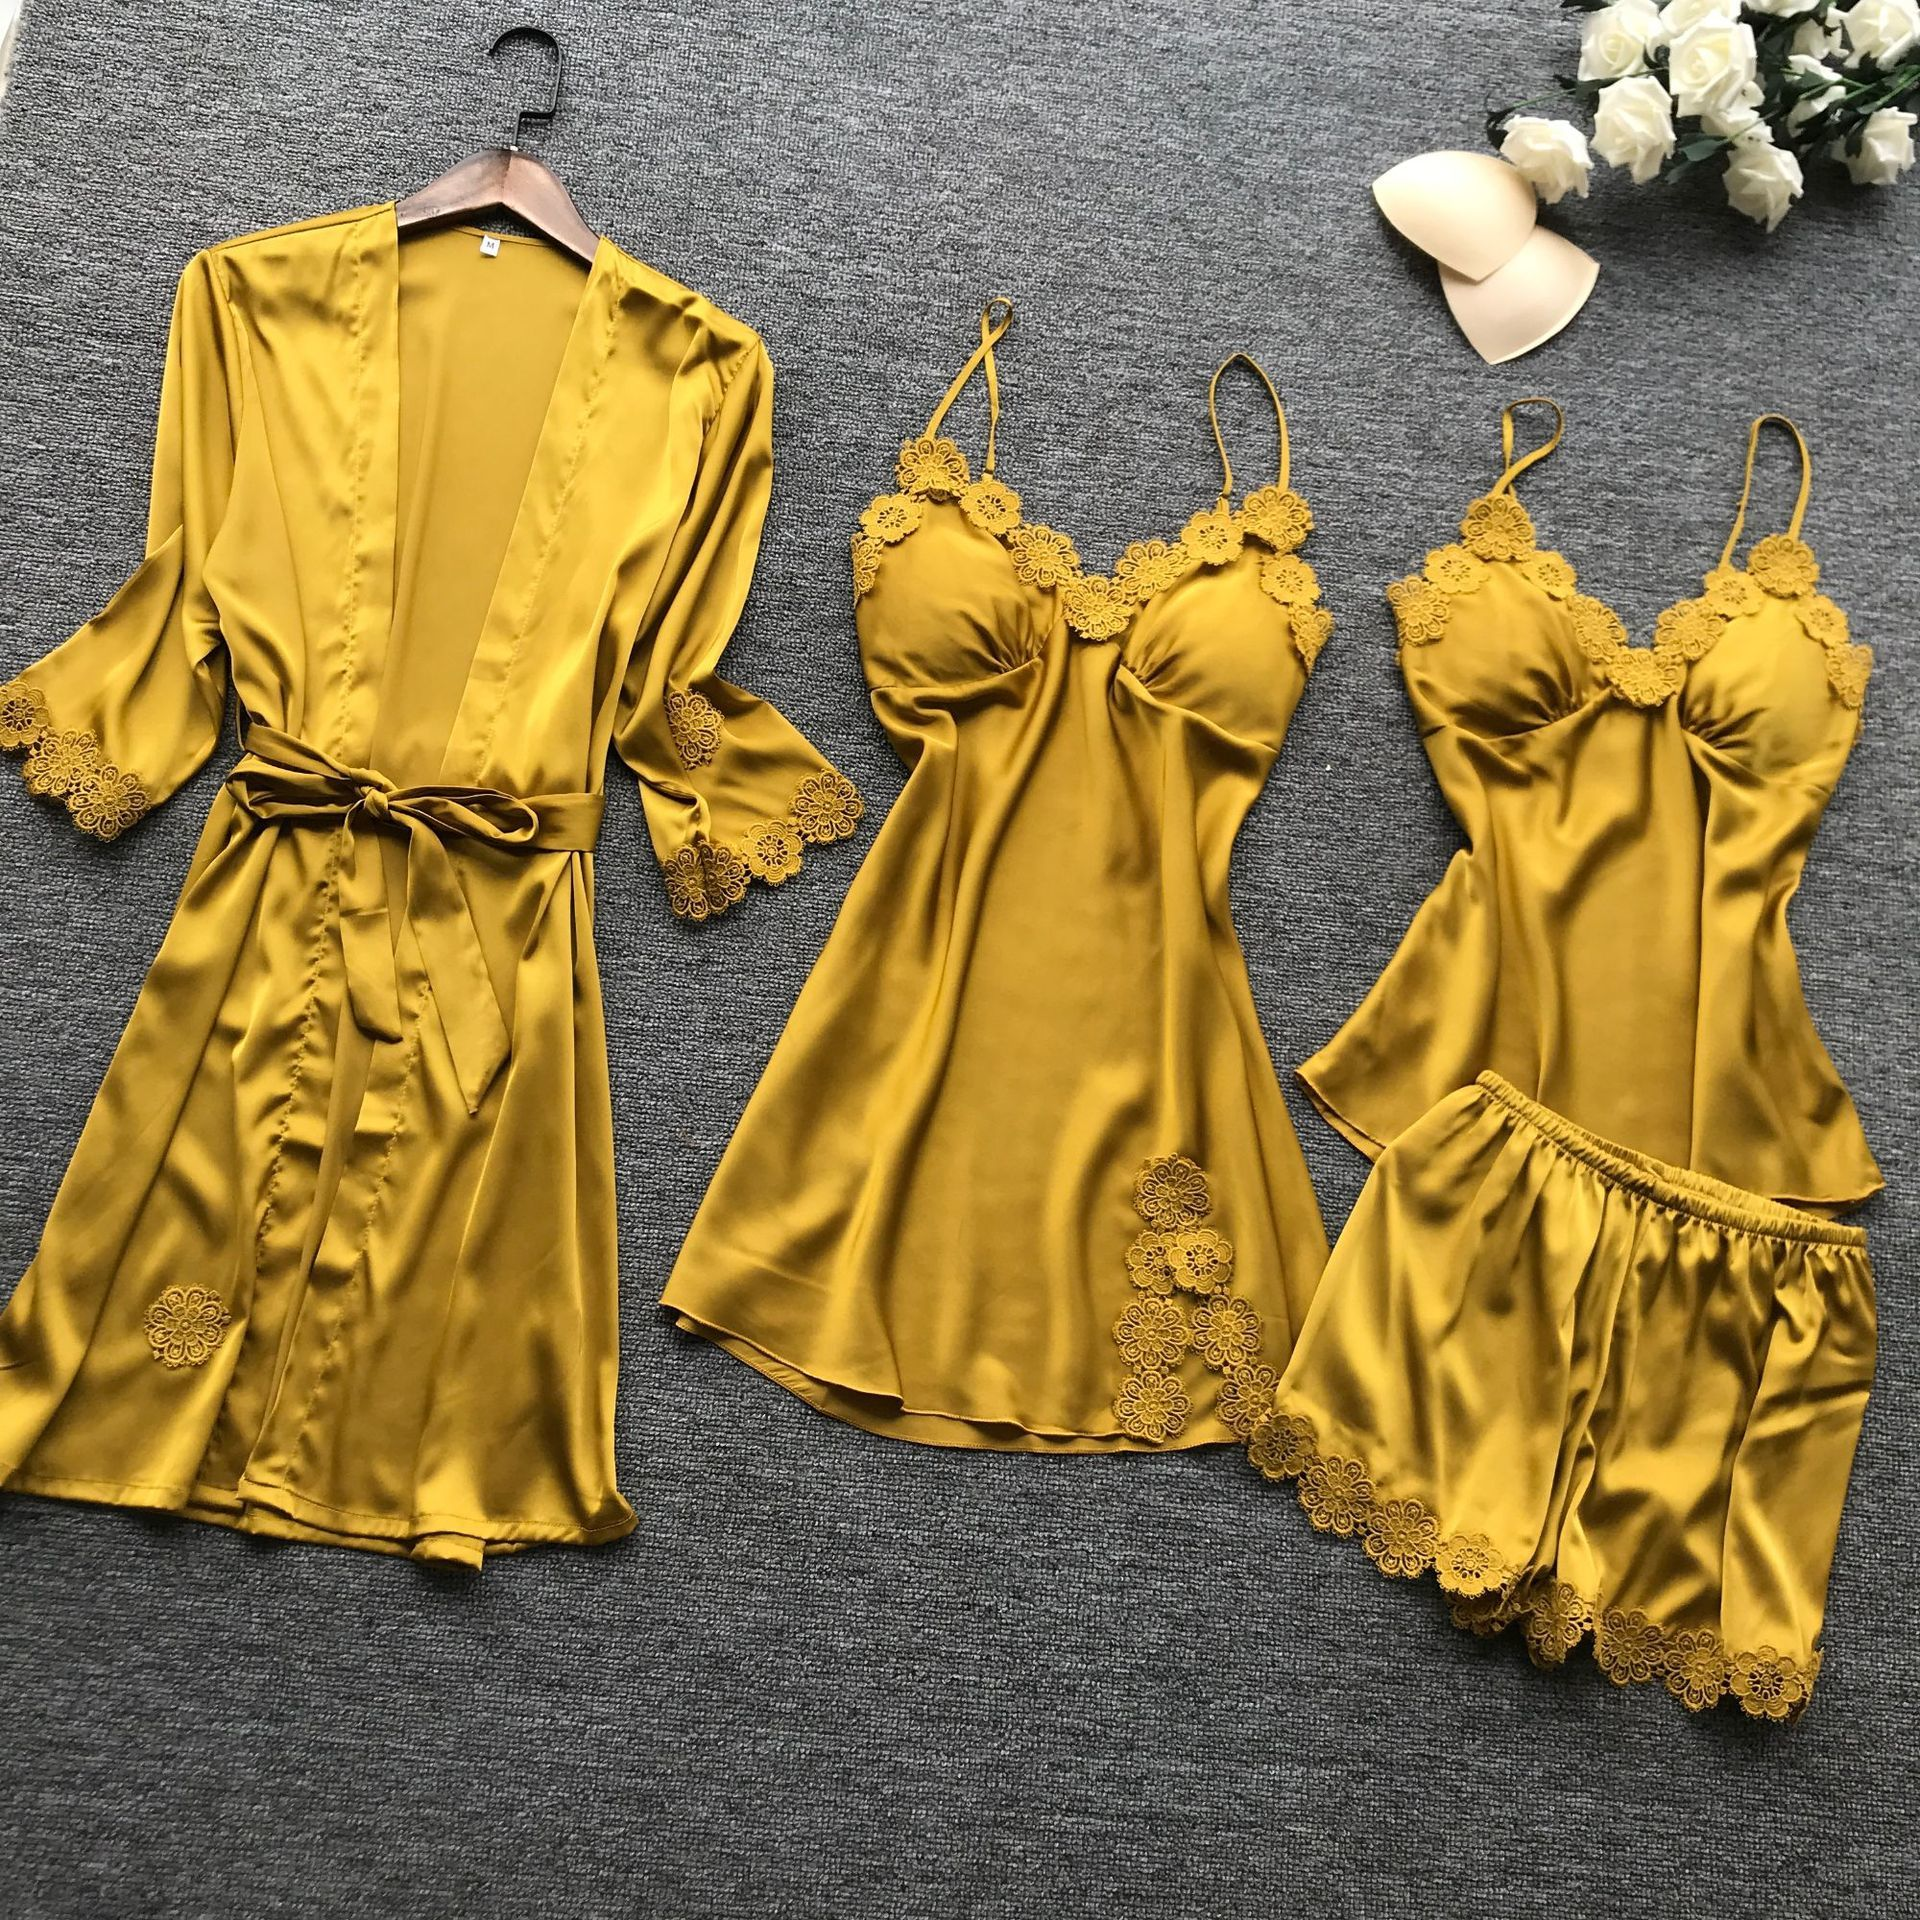 Sexy Sleepwear Pajamas Satin 4pcs-Set High-Quality Lace Summer New with Chest-Pad